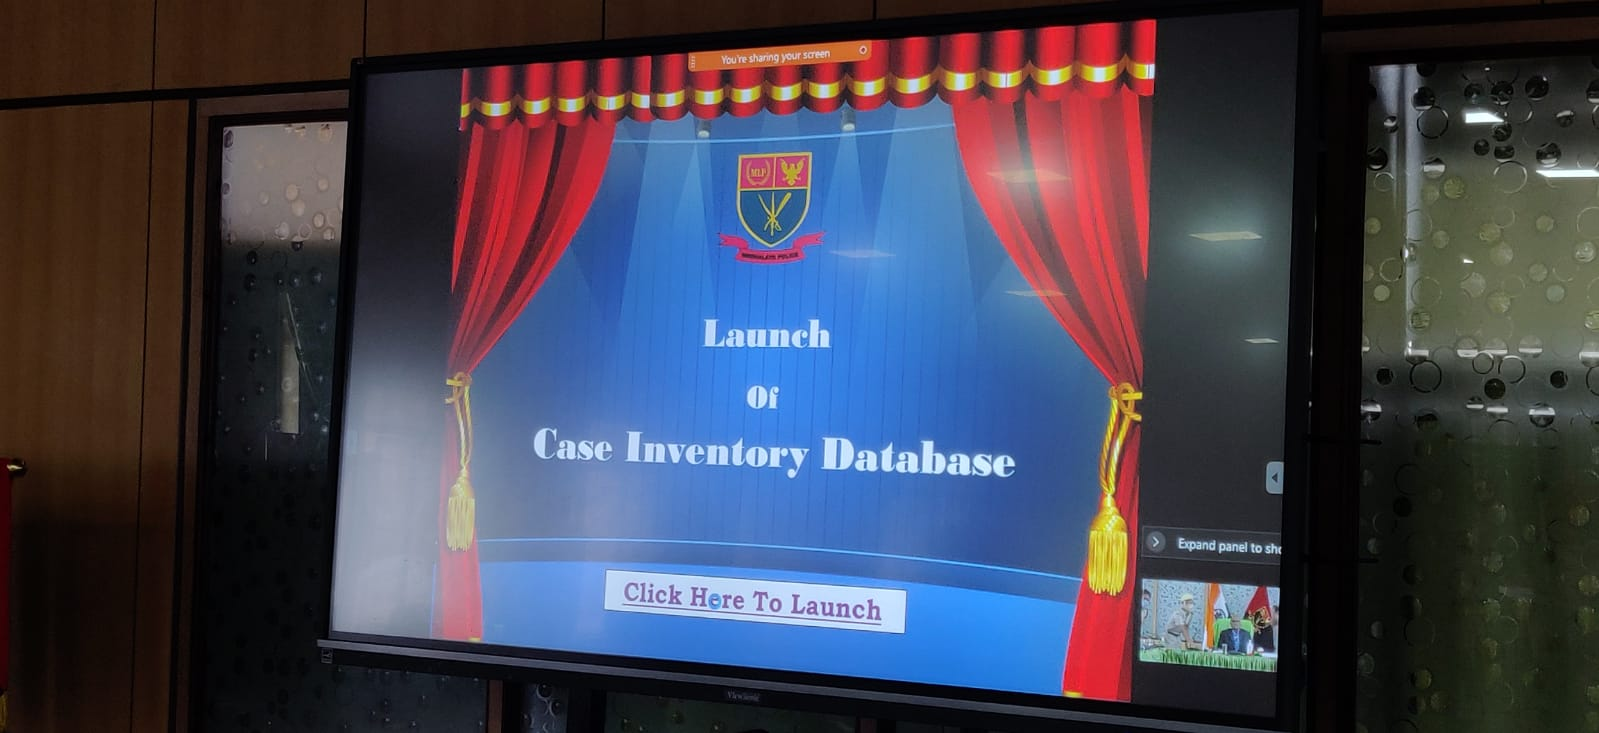 On 30th July, 2021, Shri. R. Chandranathan, IPS, Director General of Police, Meghalaya launched Case Inventory Database portal at Police Head Quarters.